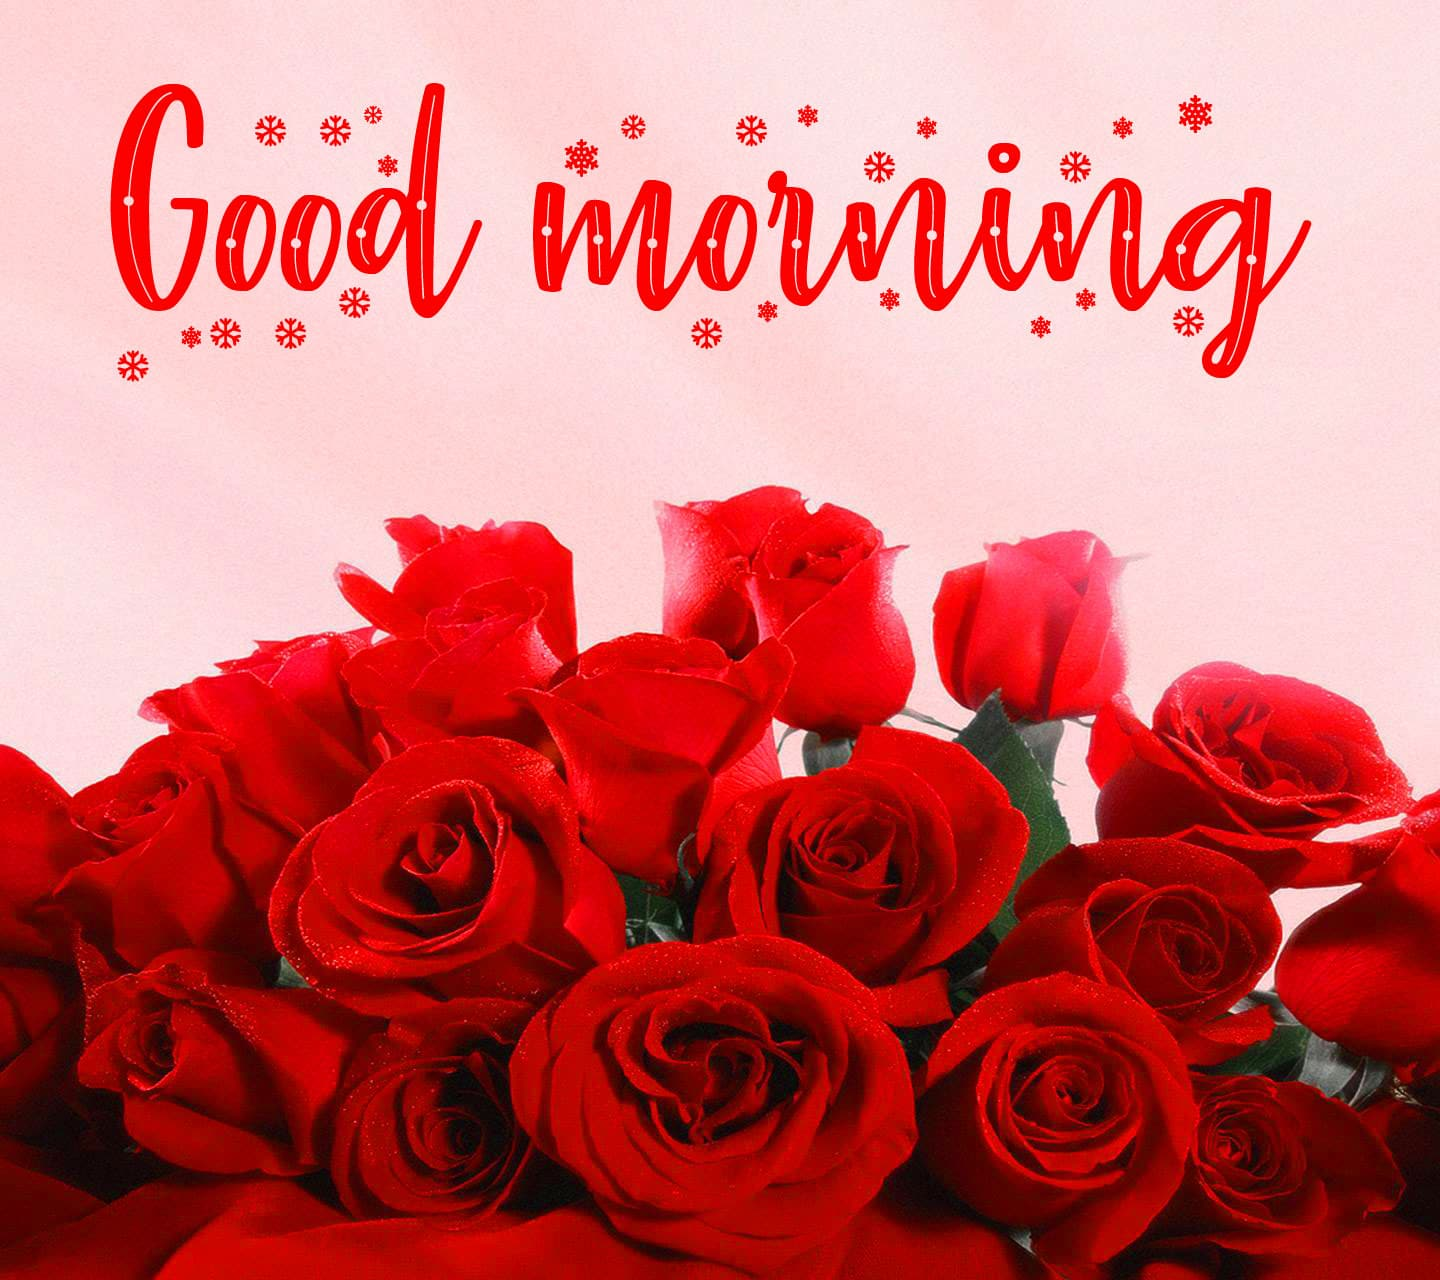 Good Morning Wishes Images for Girlfriend With Red Rose